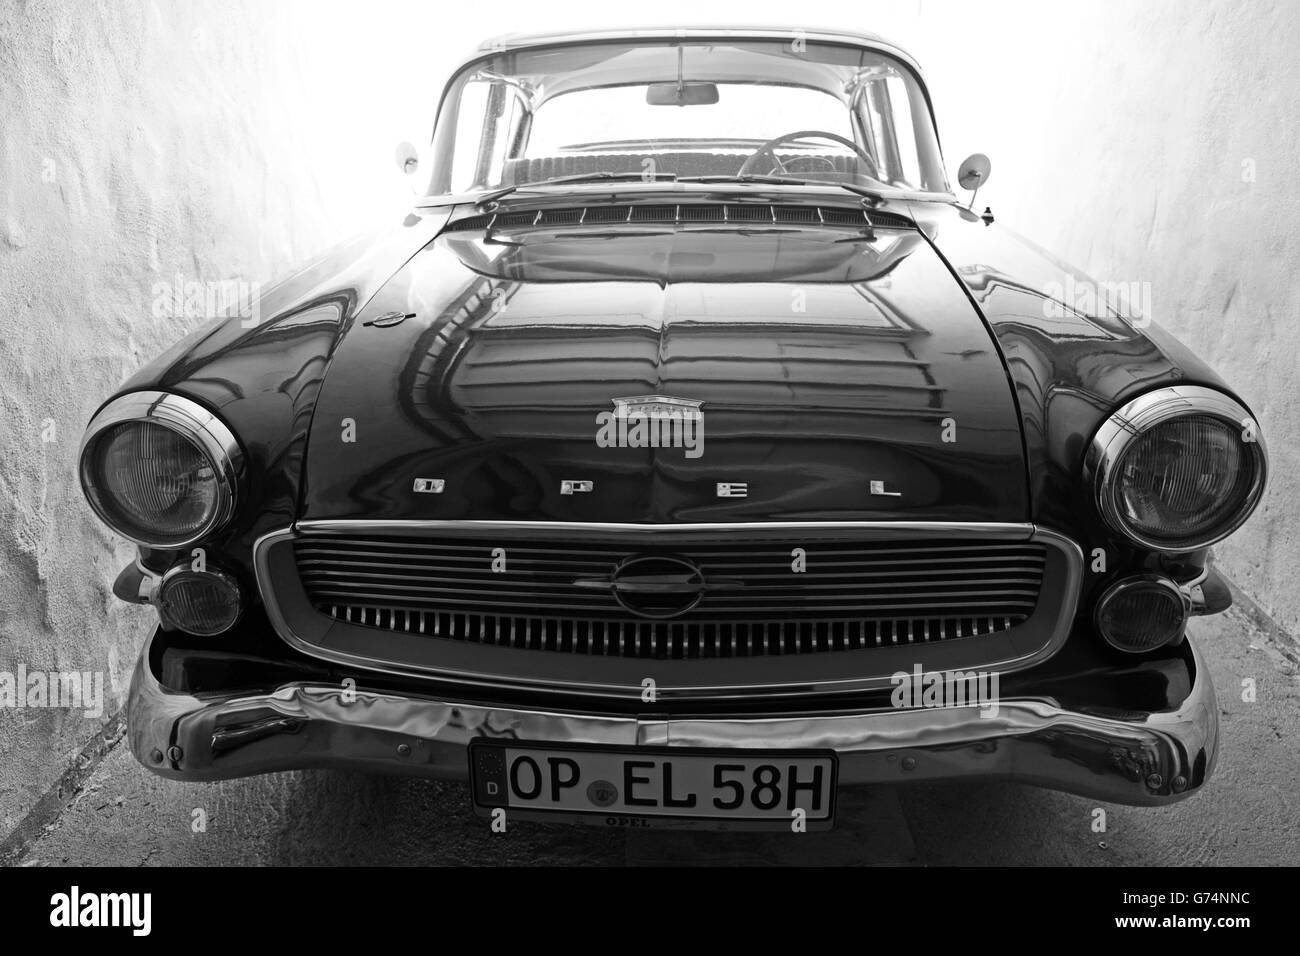 Opel Car Black And White Stock Photos Amp Images Alamy